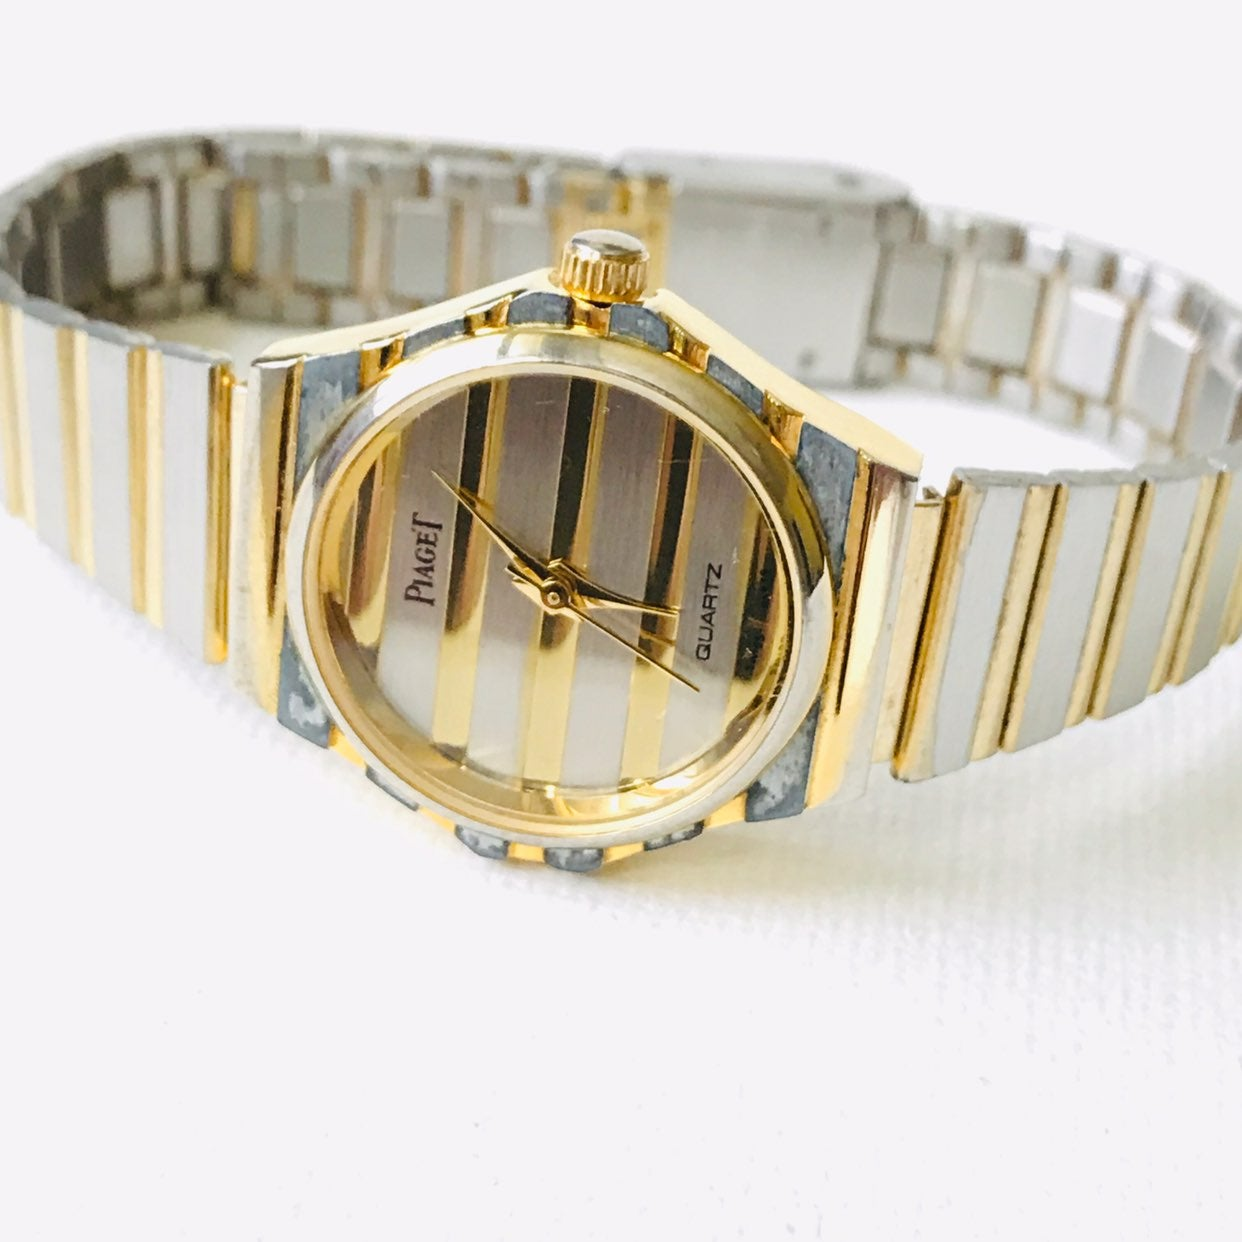 Piaget Vintage Women's Two Tone Watch